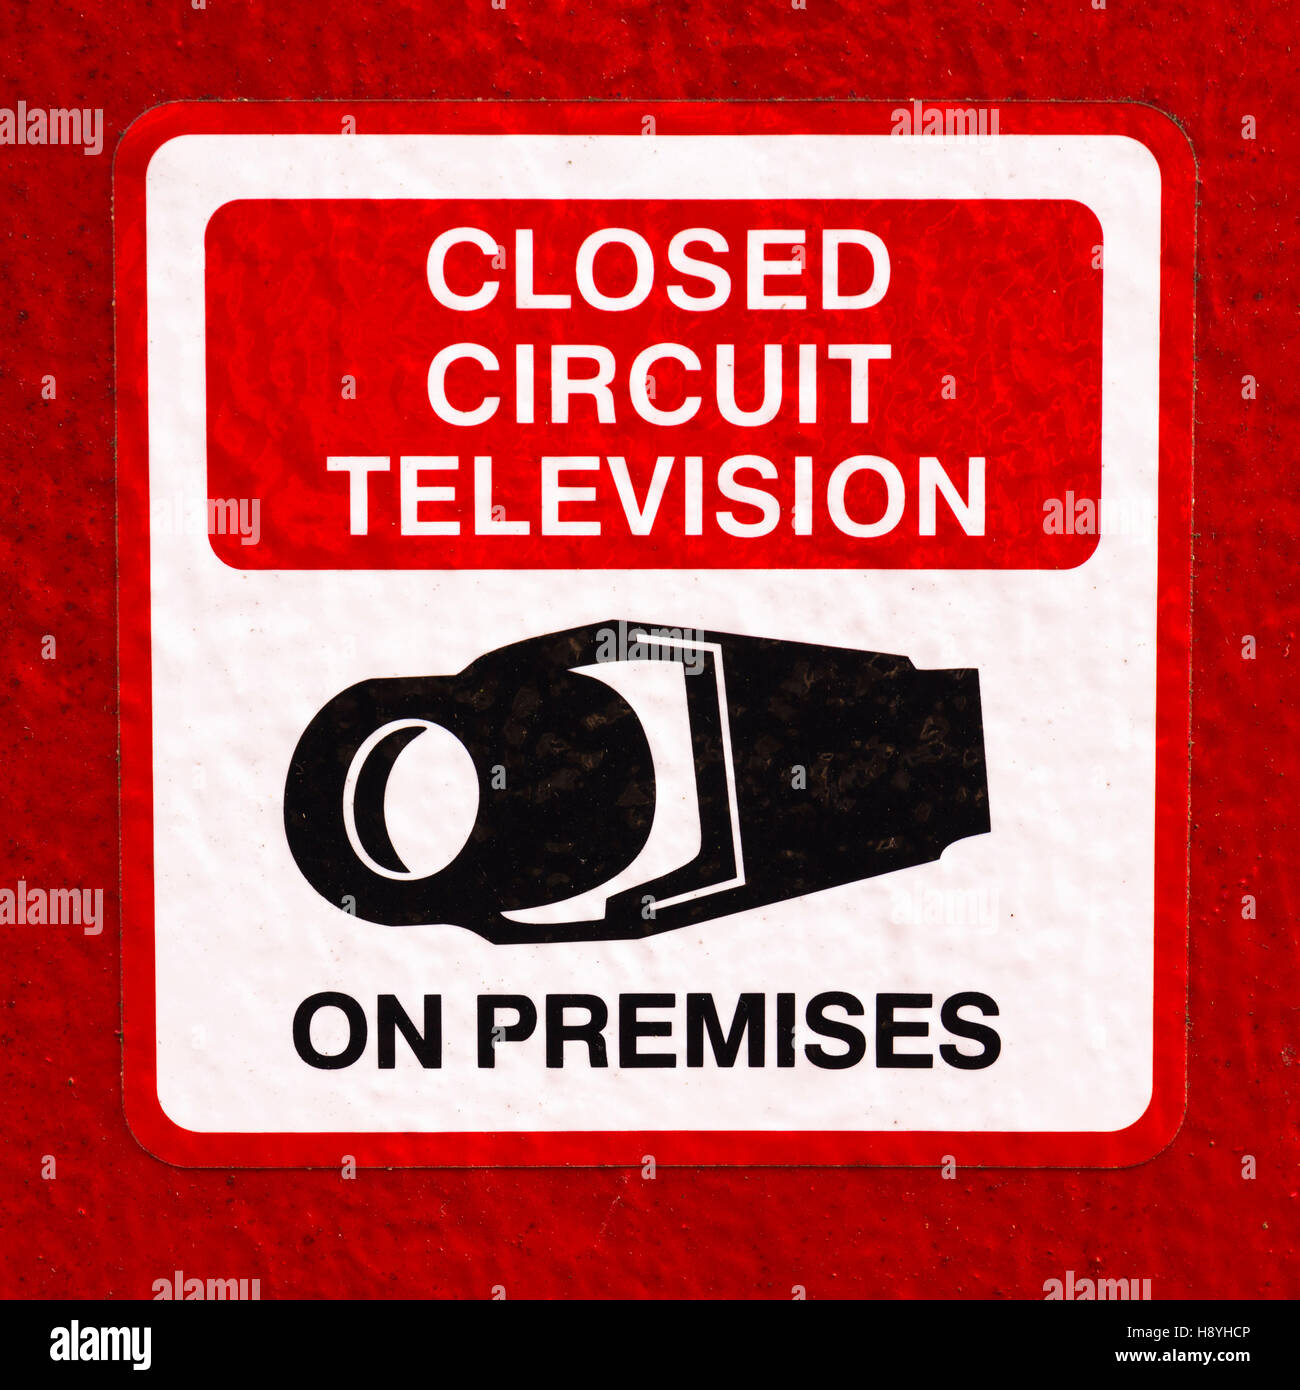 Sign 'Closed Circuit Television On Premises' - Stock Image